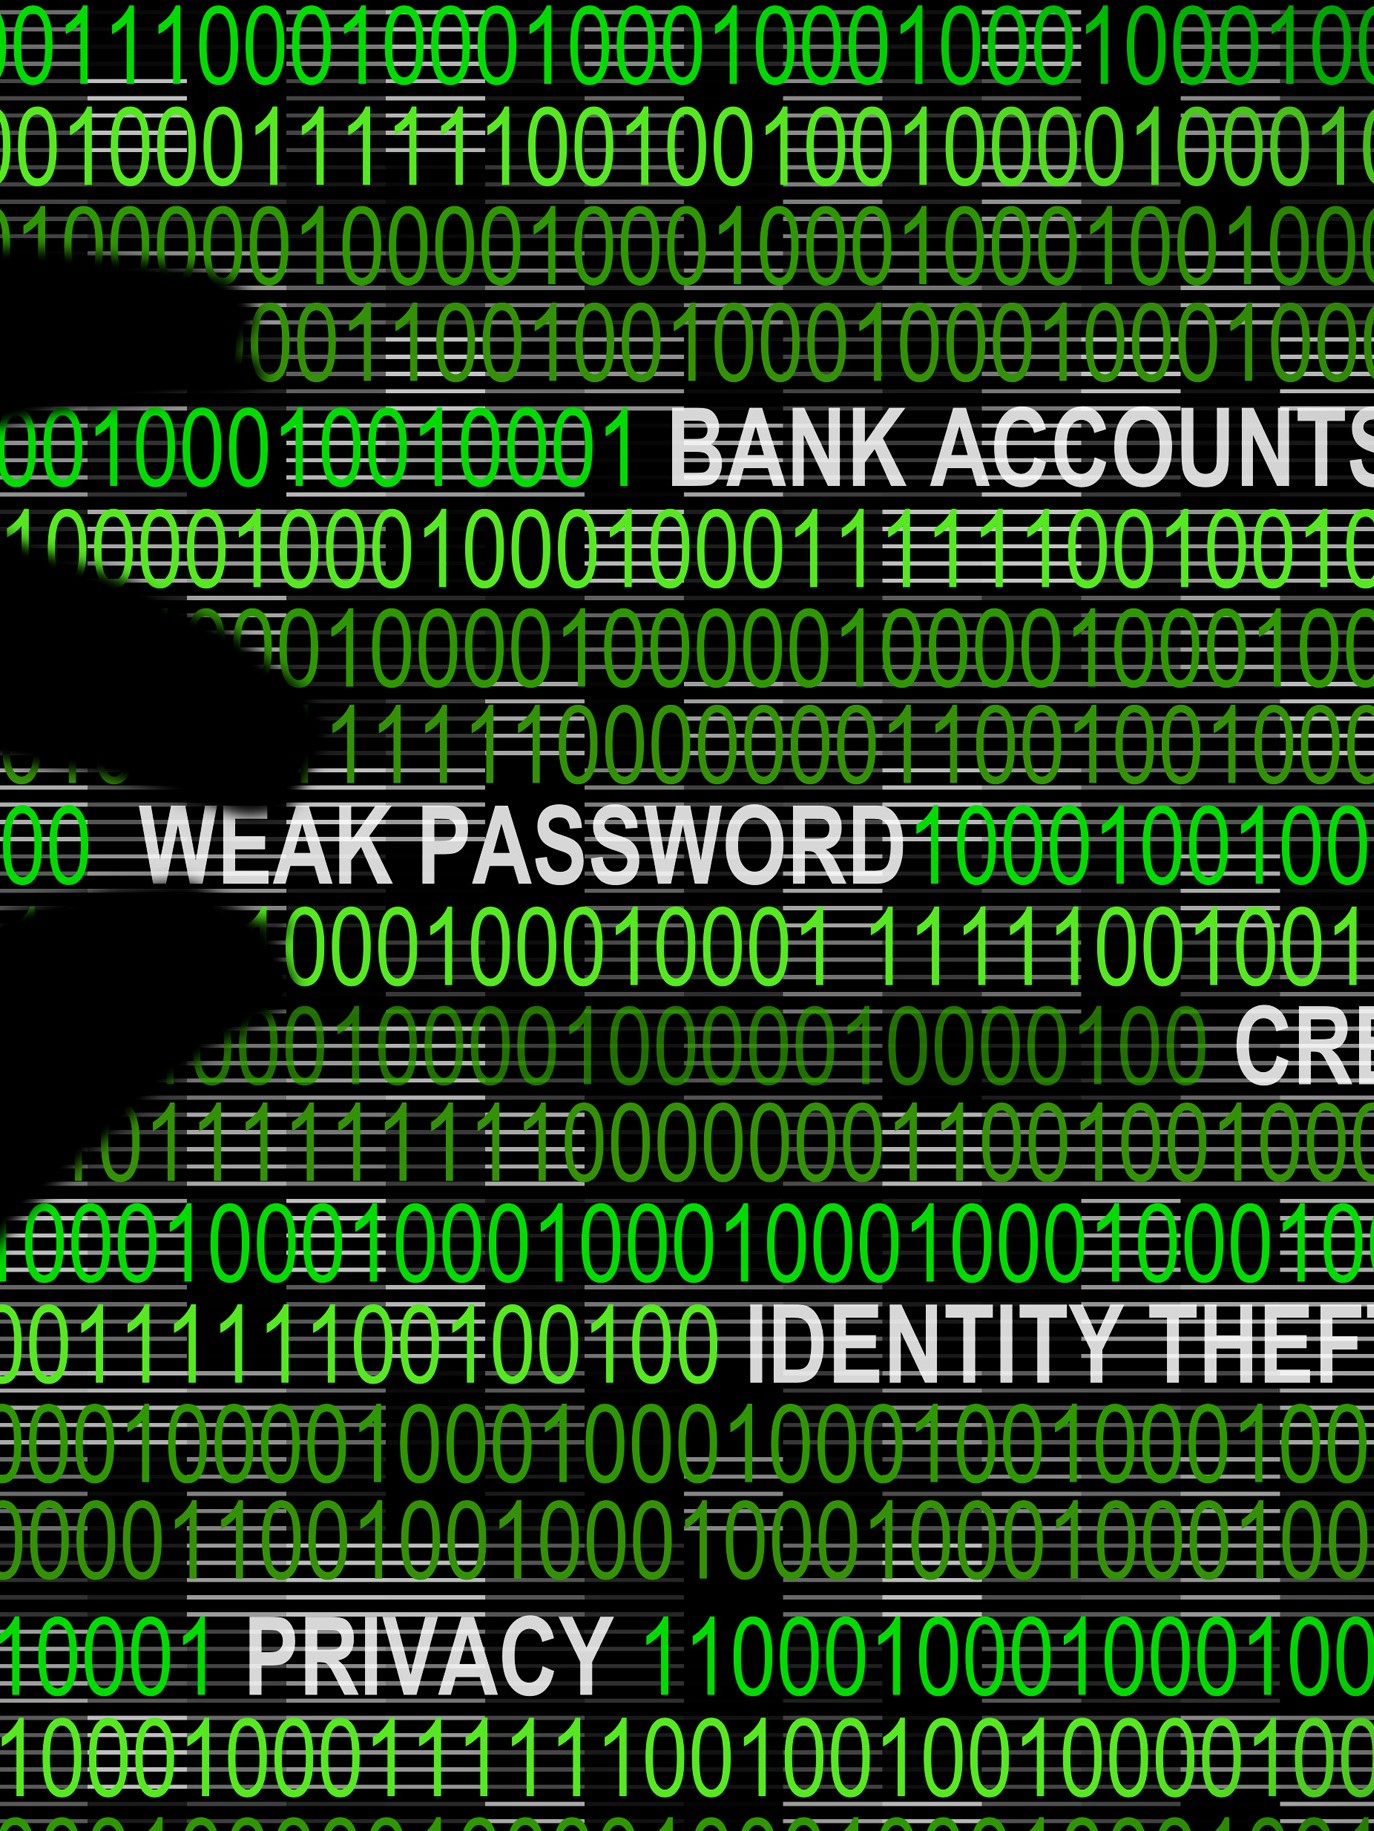 Cybersecurity - Weak Password Concept